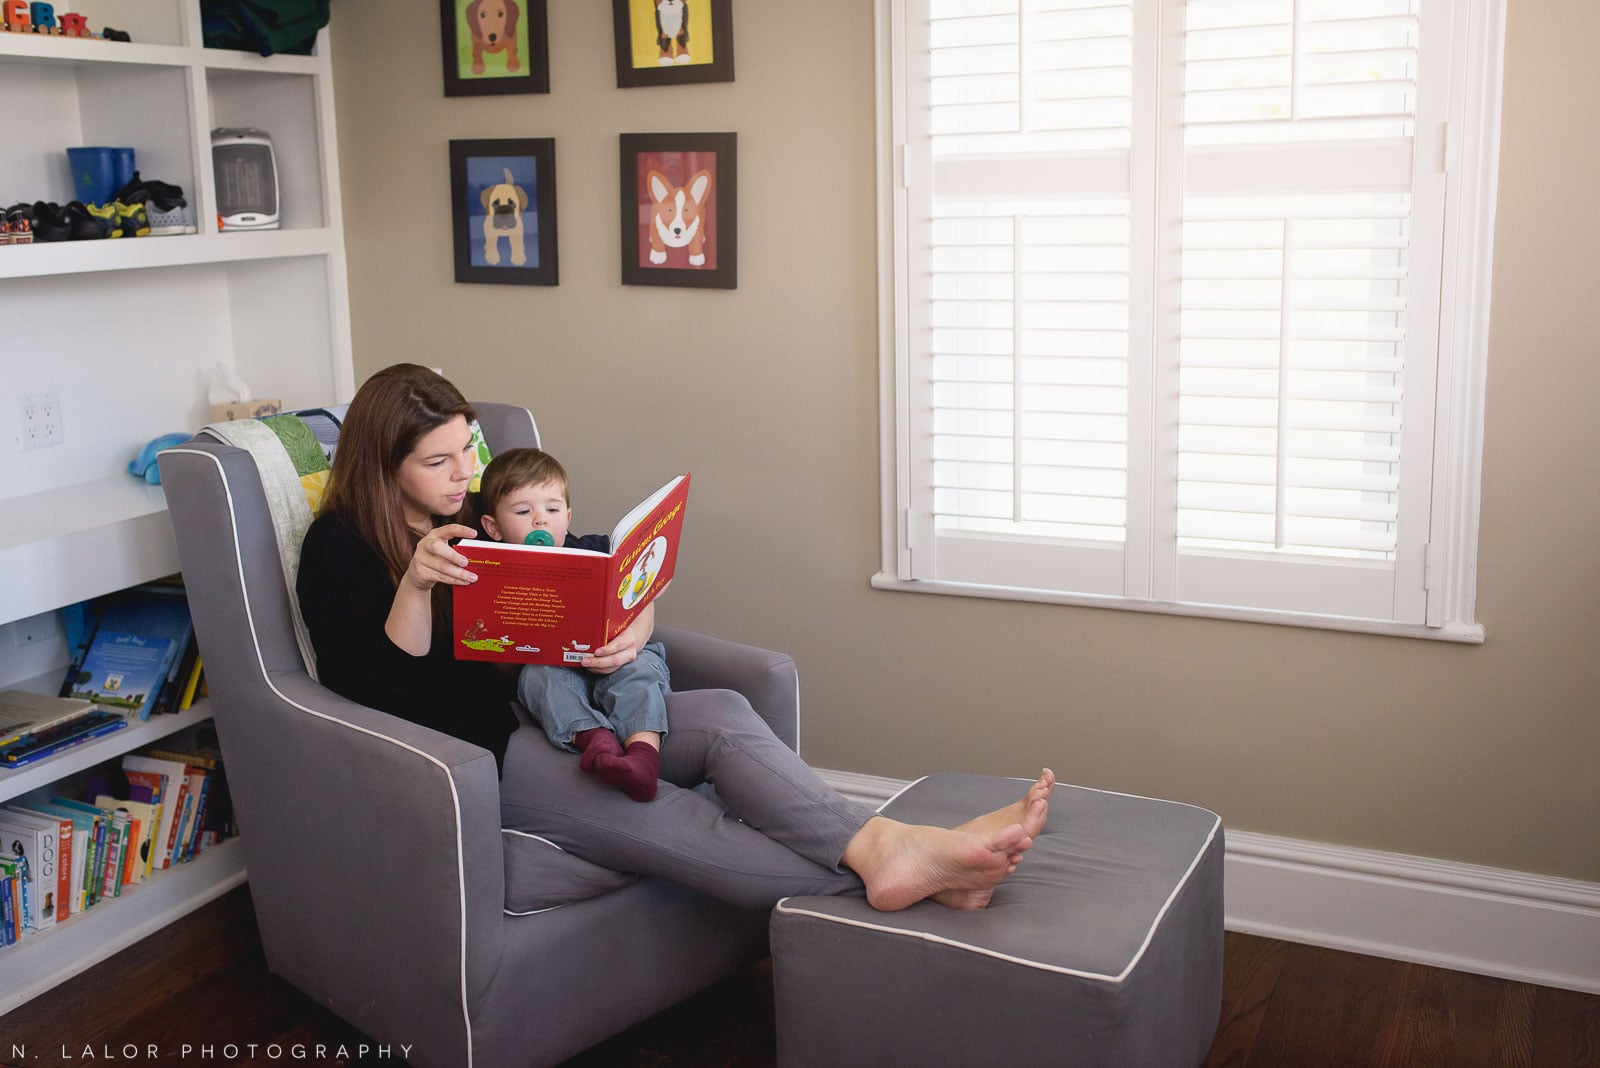 Mom reading a Curious George book to toddler son. In-home lifestyle photo by N. Lalor Photography. Connecticut.